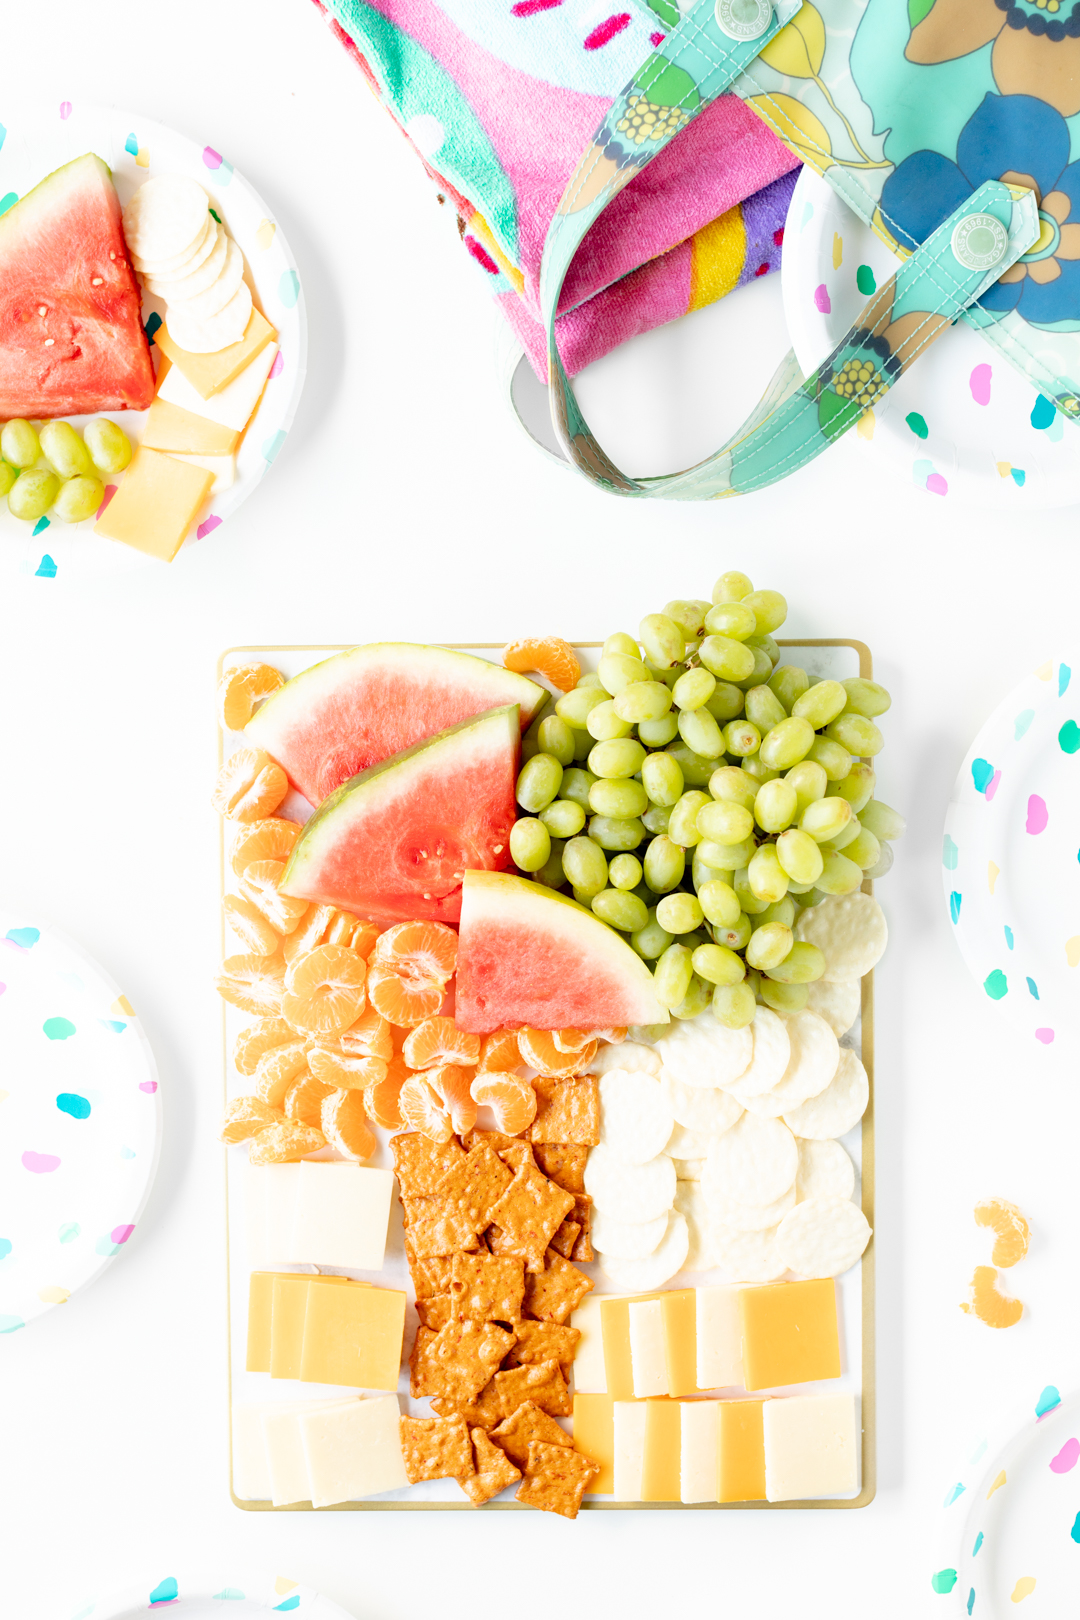 watermelon, grapes, mandarins, cheese and crackers on a tray